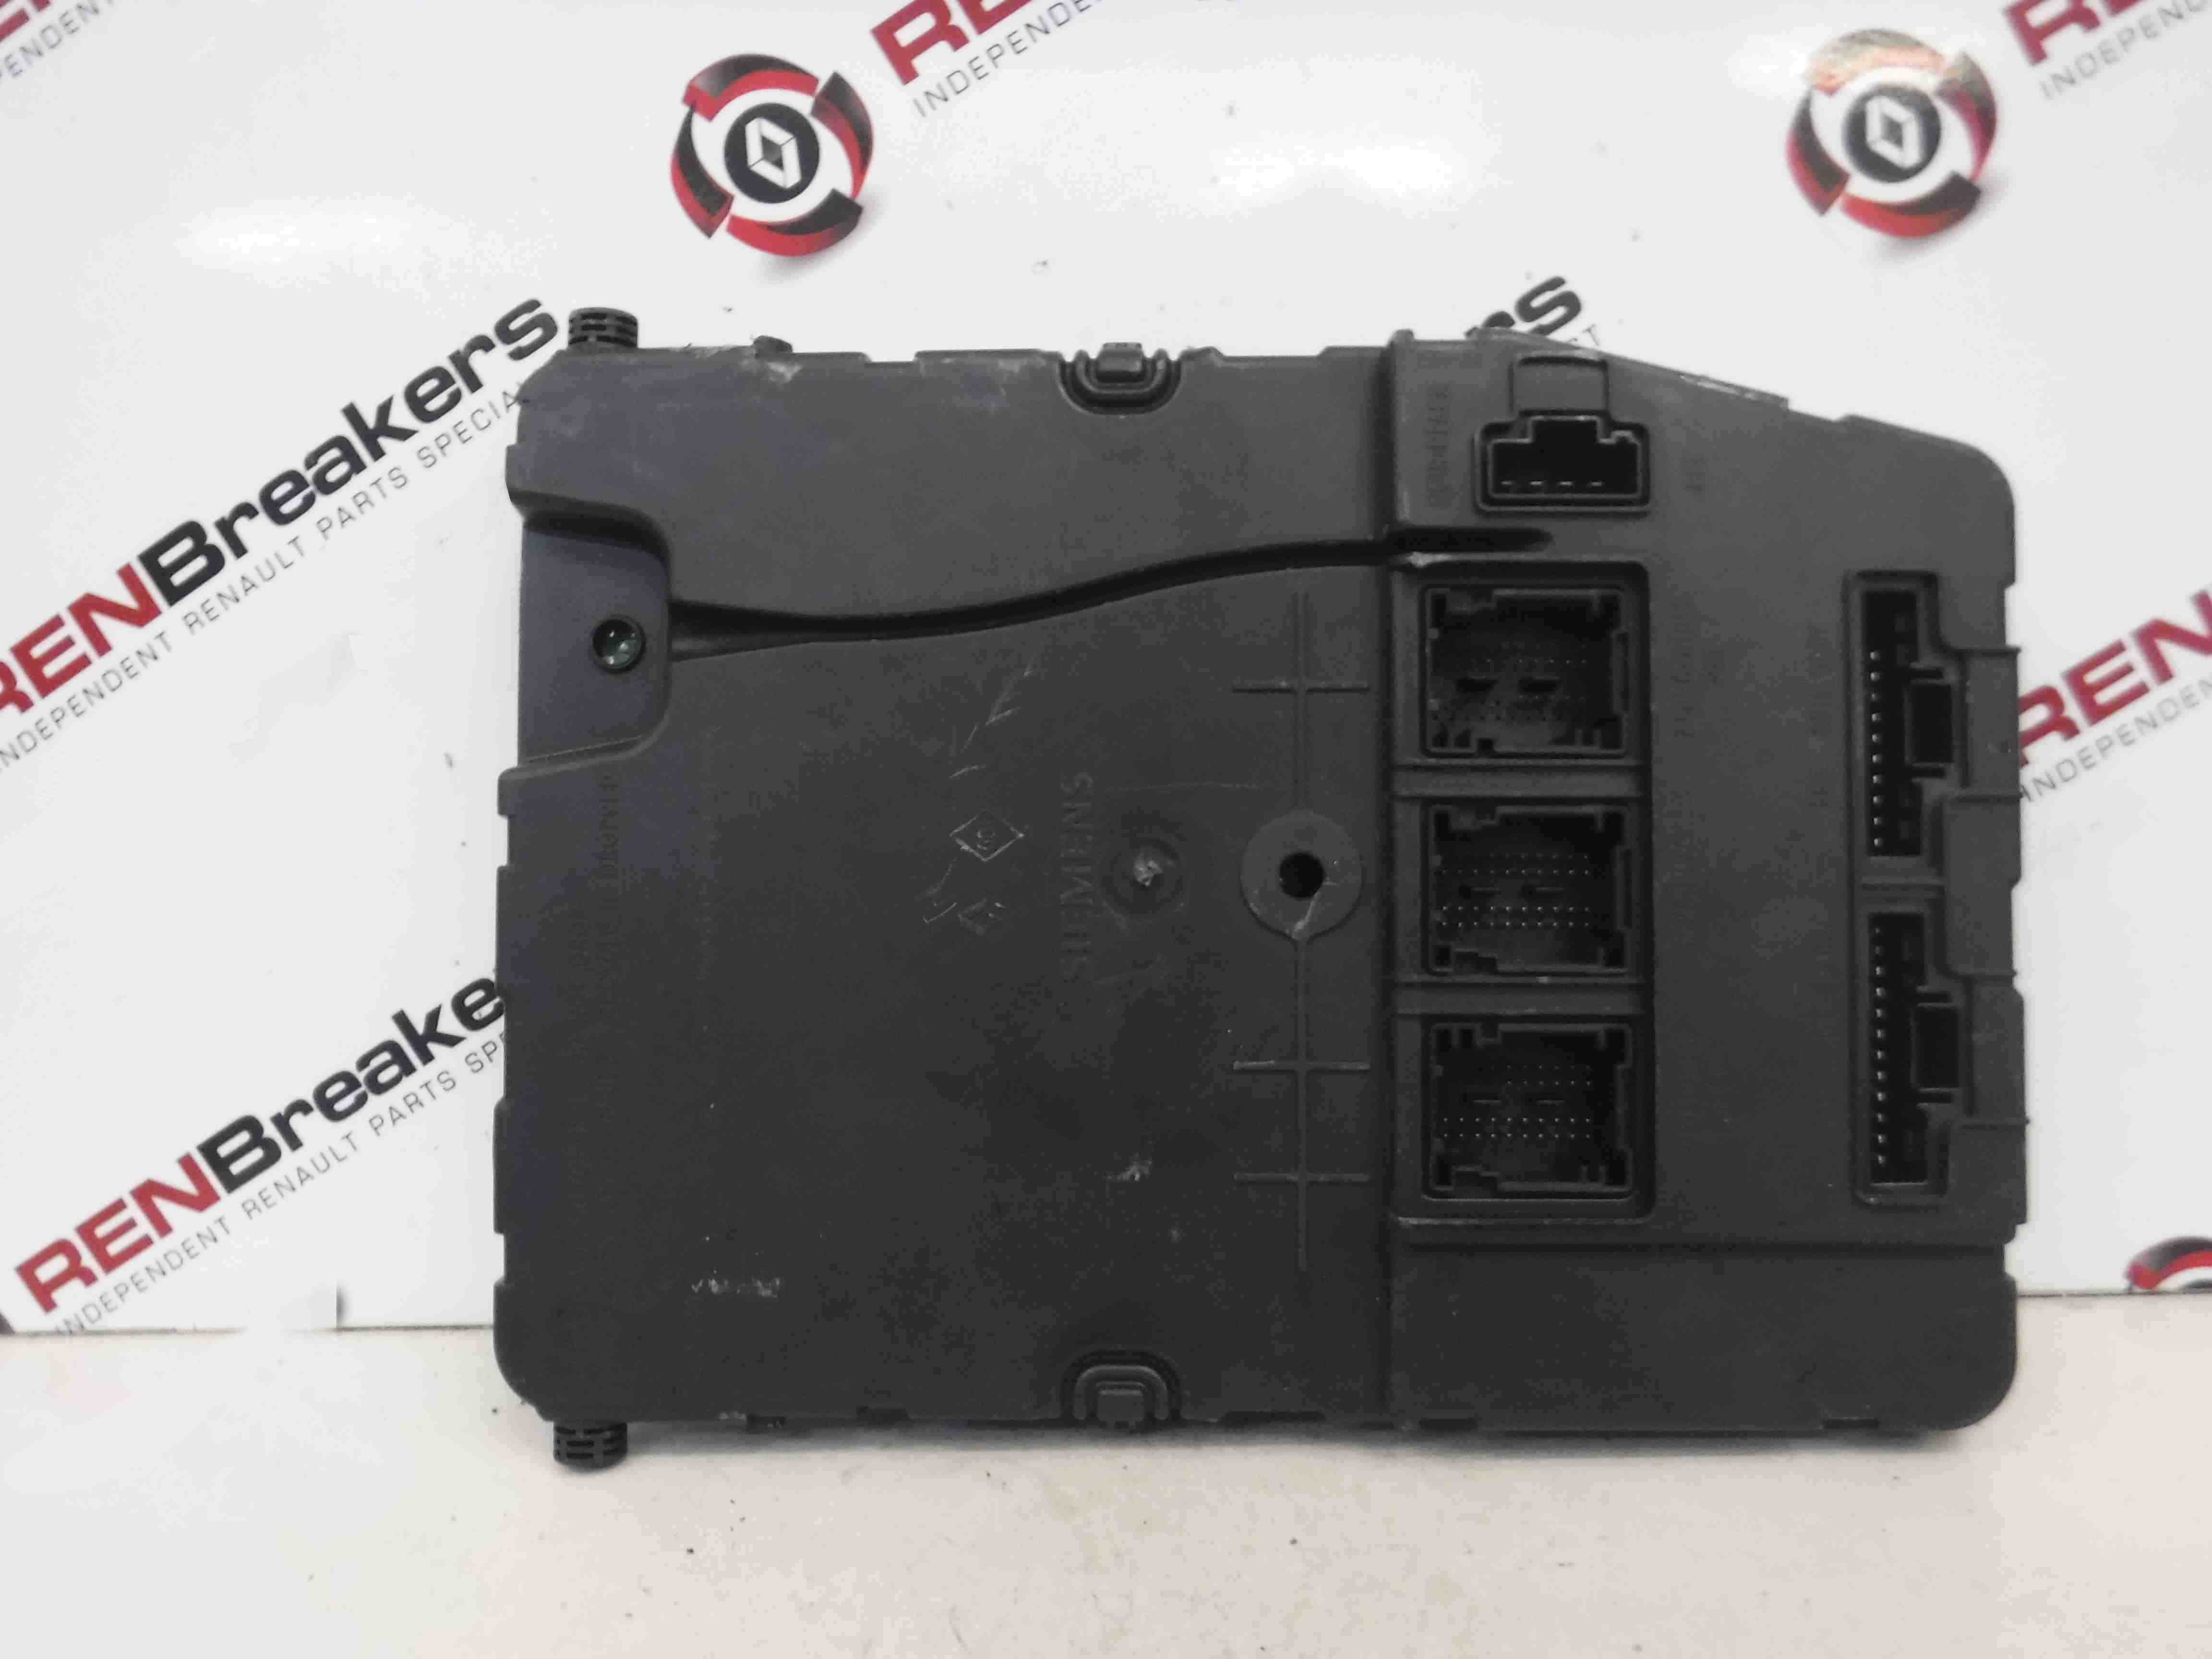 Renault Megane 2002-2008 Dashboard UCH BCM Fuse Box 8200606825